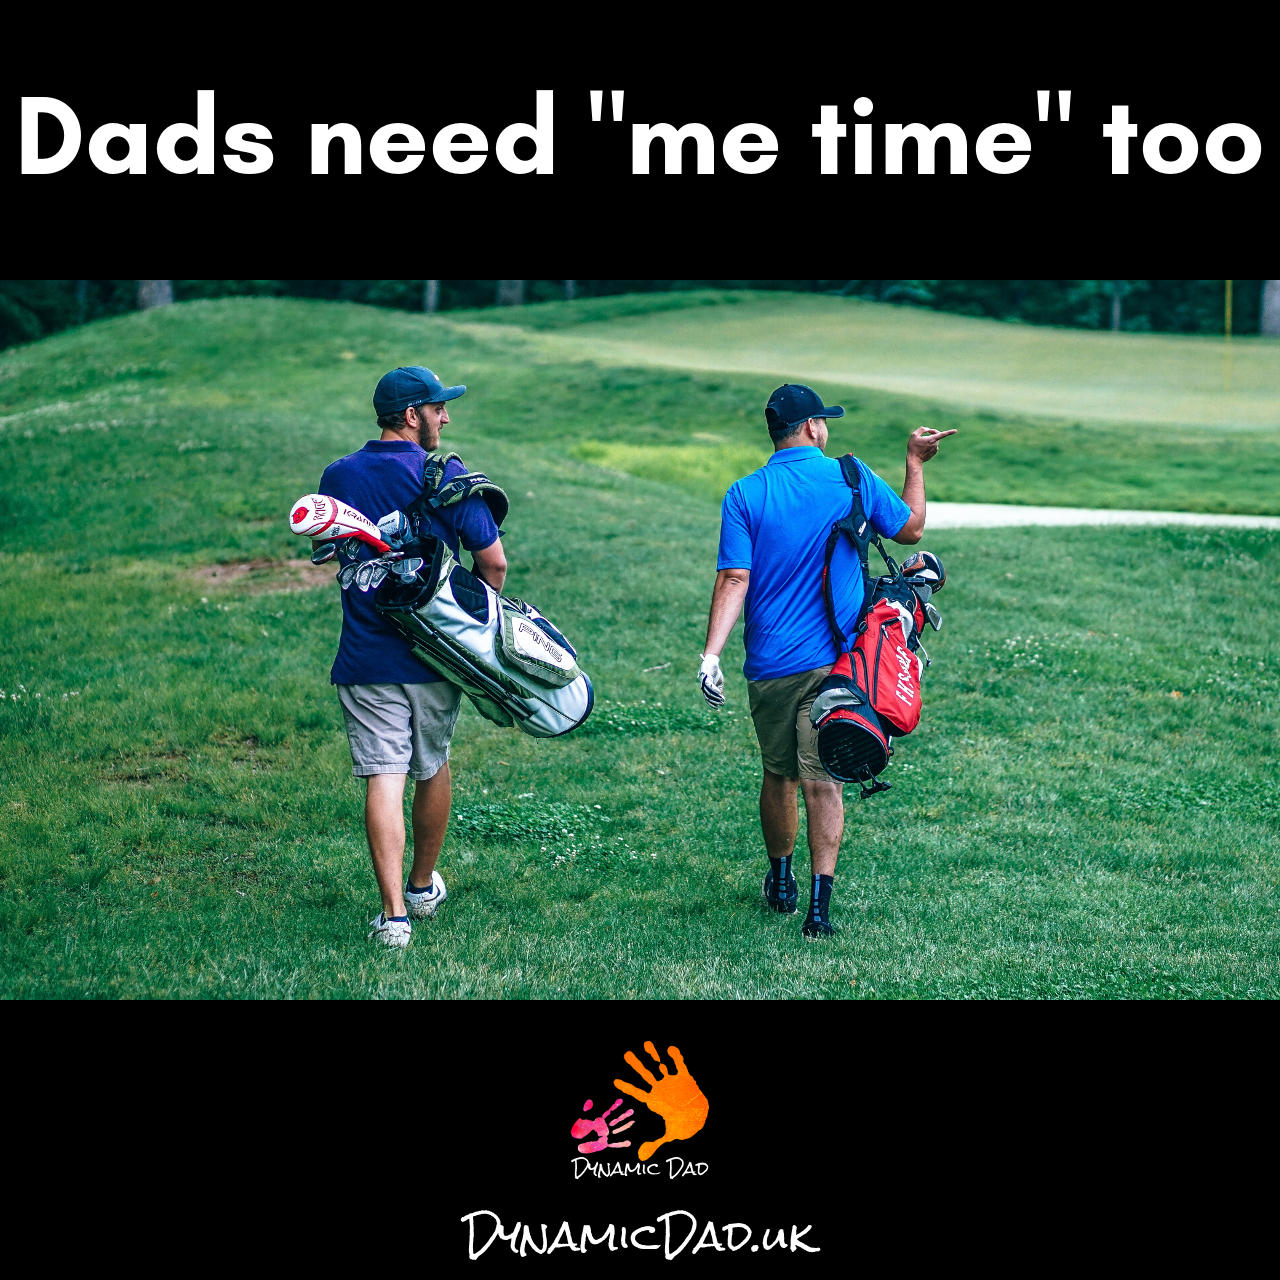 Dads need me time too - Dynamic Dad